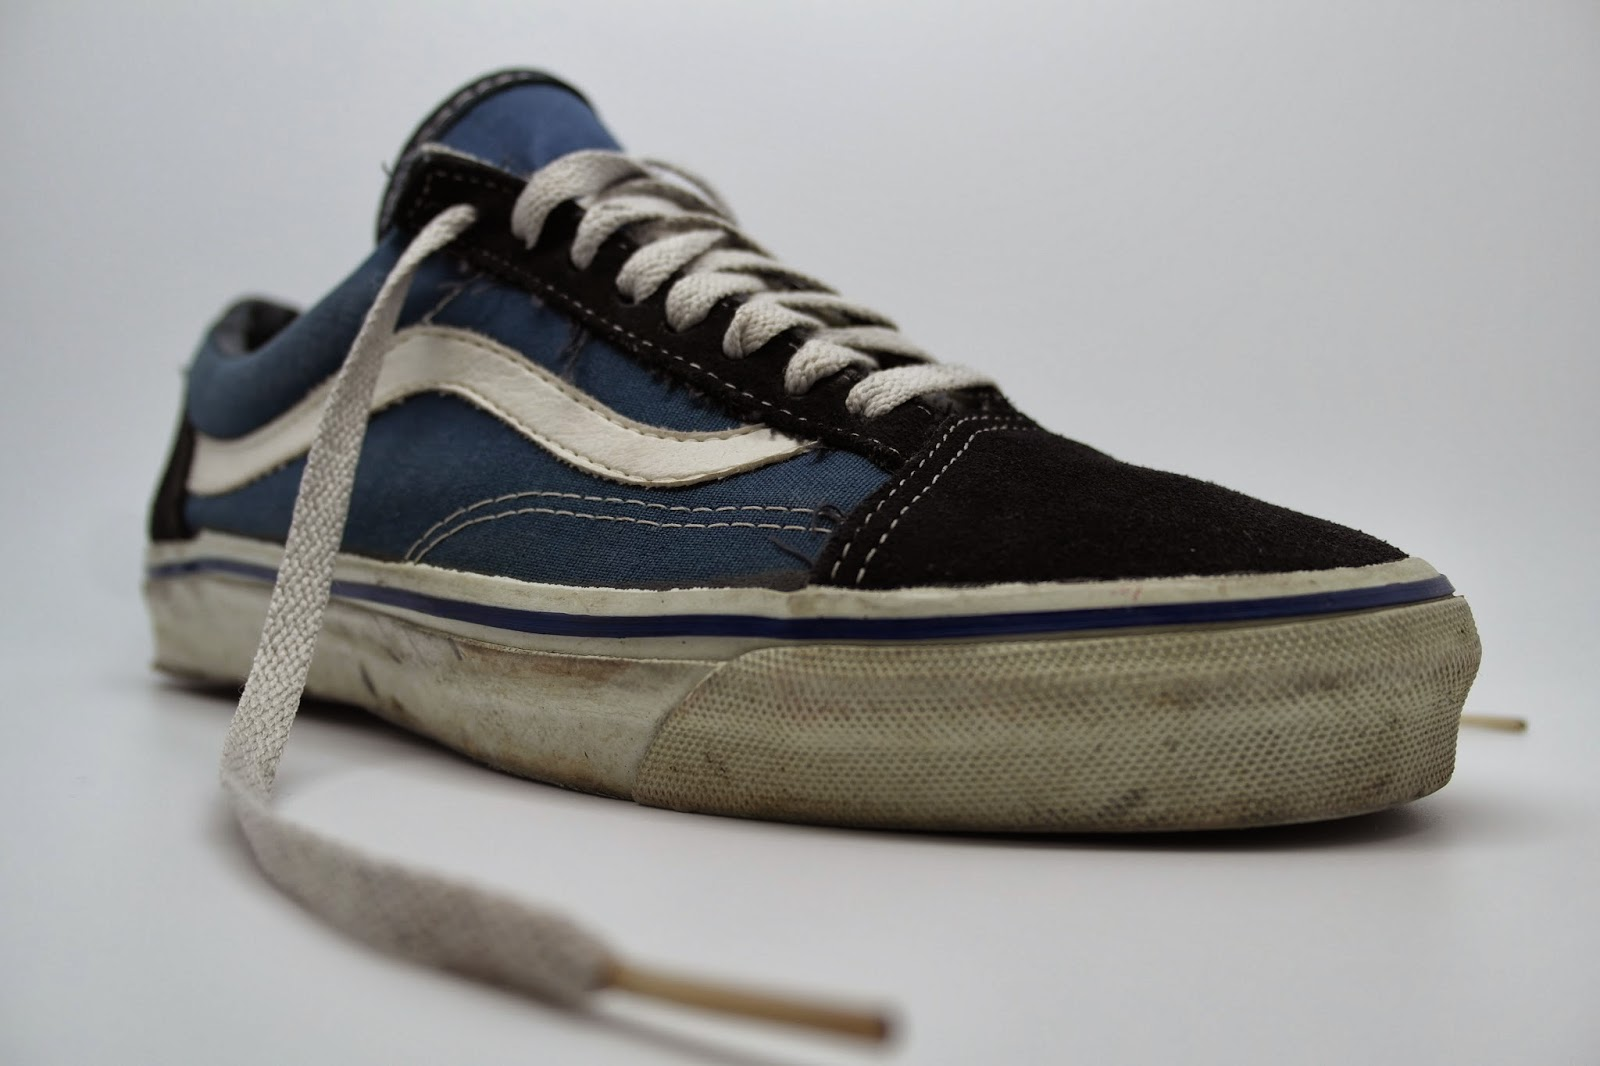 05f094a1a20f theothersideofthepillow  vintage VANS navy suede canvas 90s SKATE staple  MADE IN USA US9.5 original core blue style  36 OLD SKOOL